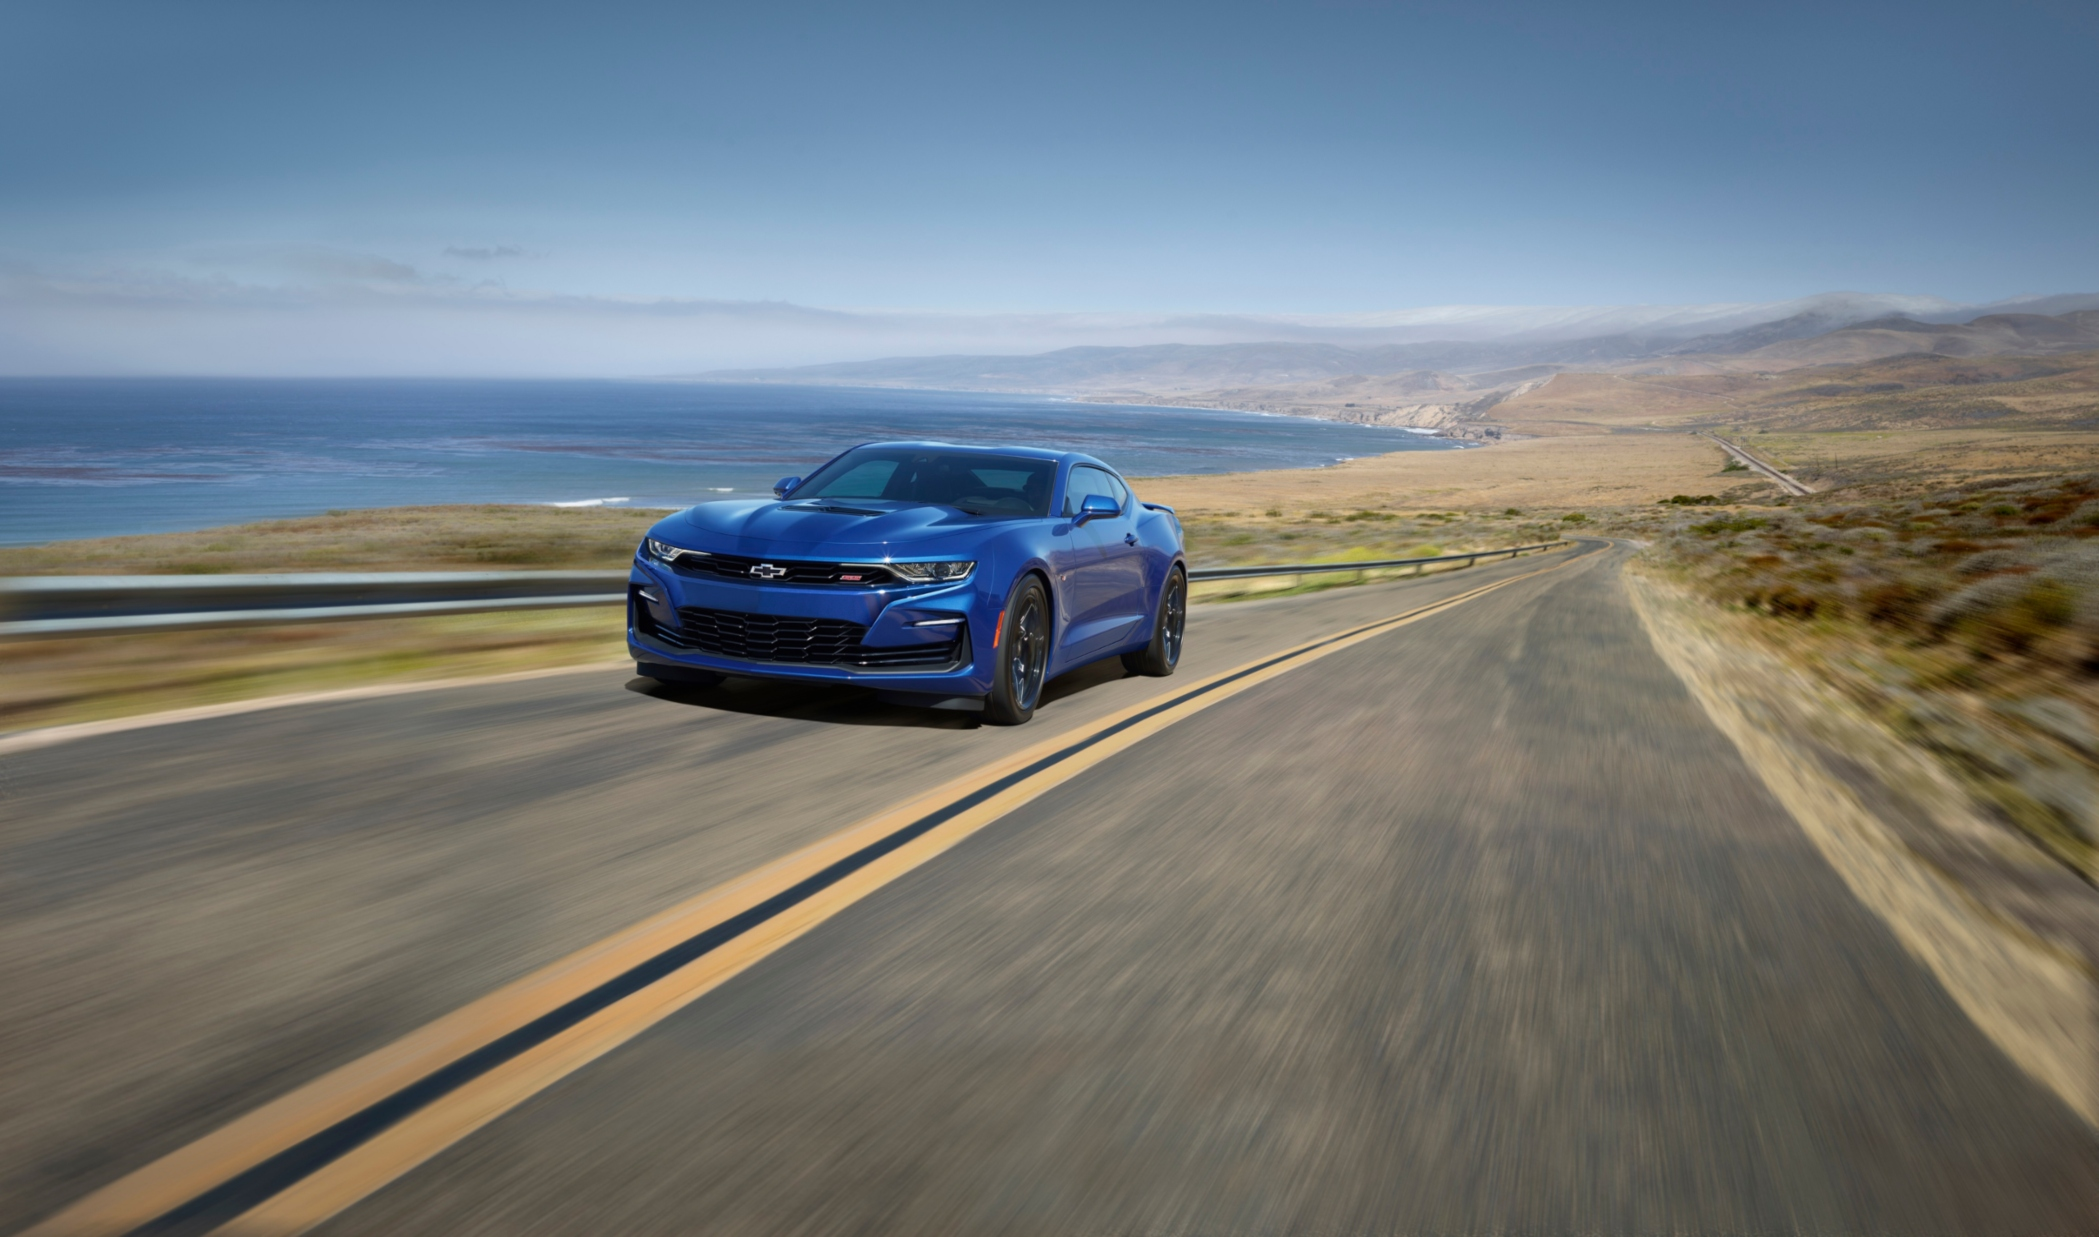 The Chevrolet Camaro Is Saying No To Retirement...For Now